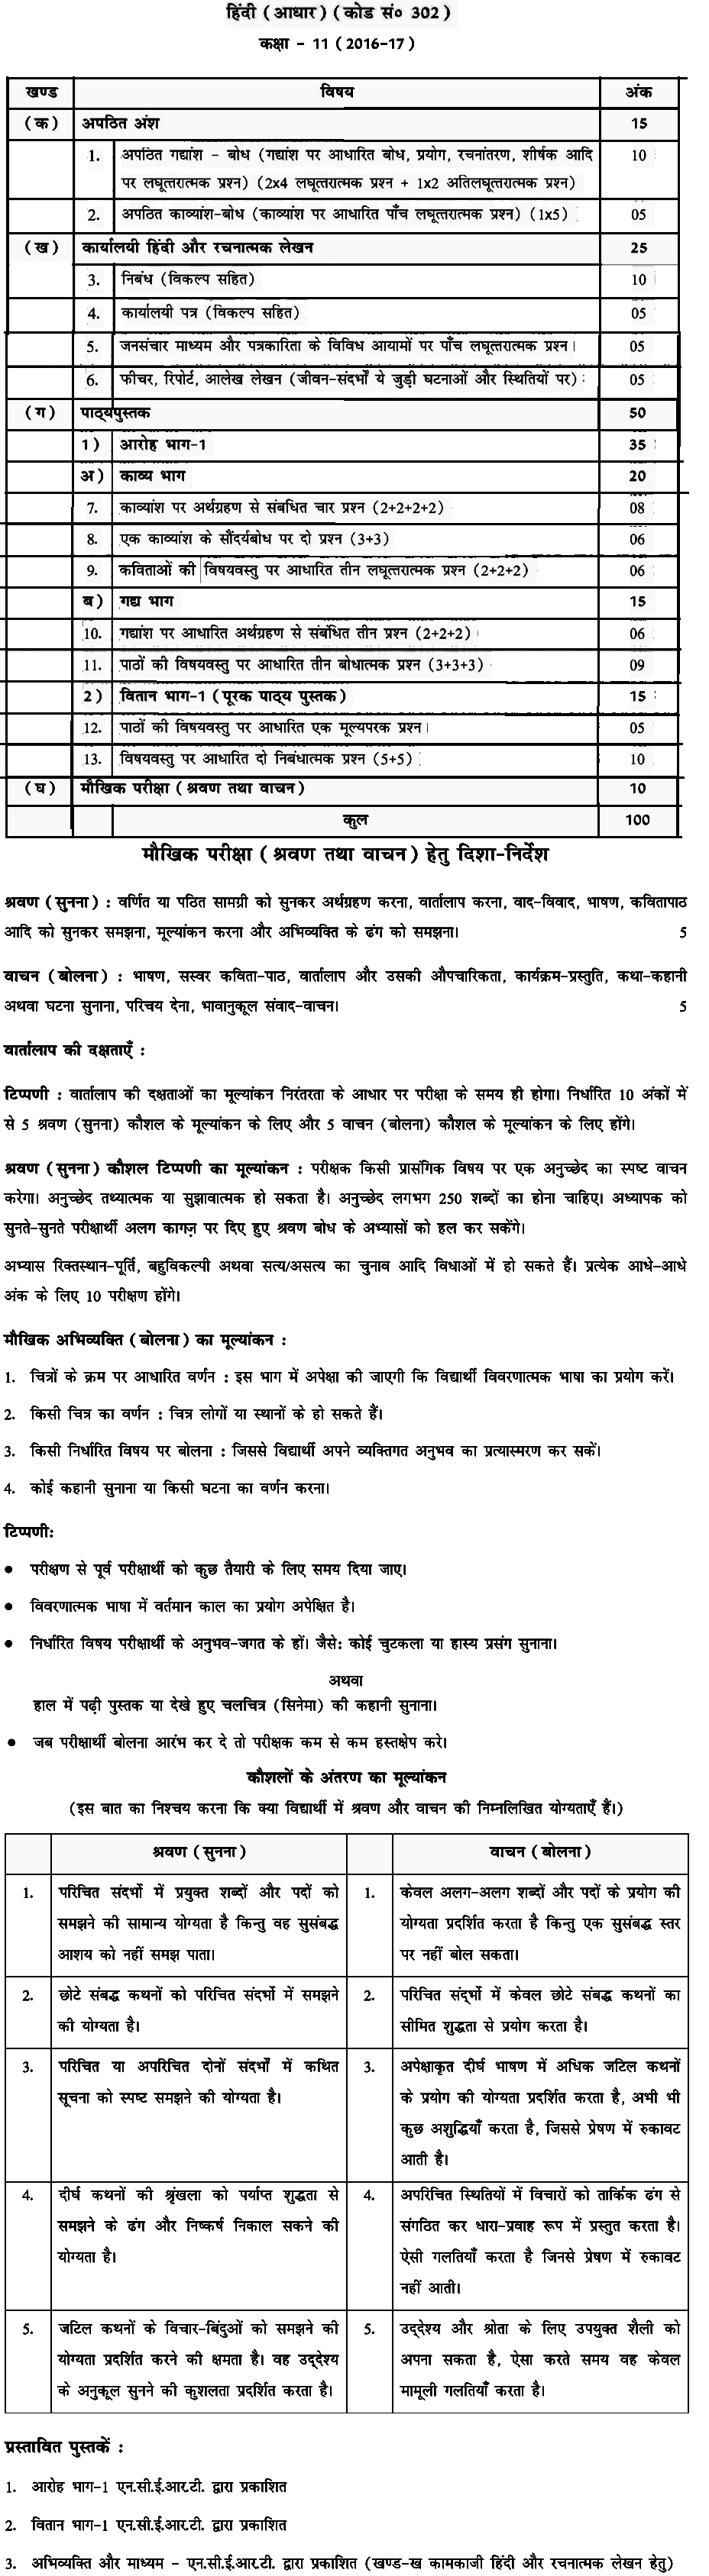 Cbse class 11 hindi core syllabus for the academic session 2016 cbse class 11 hindi core syllabus 2016 2017 malvernweather Gallery